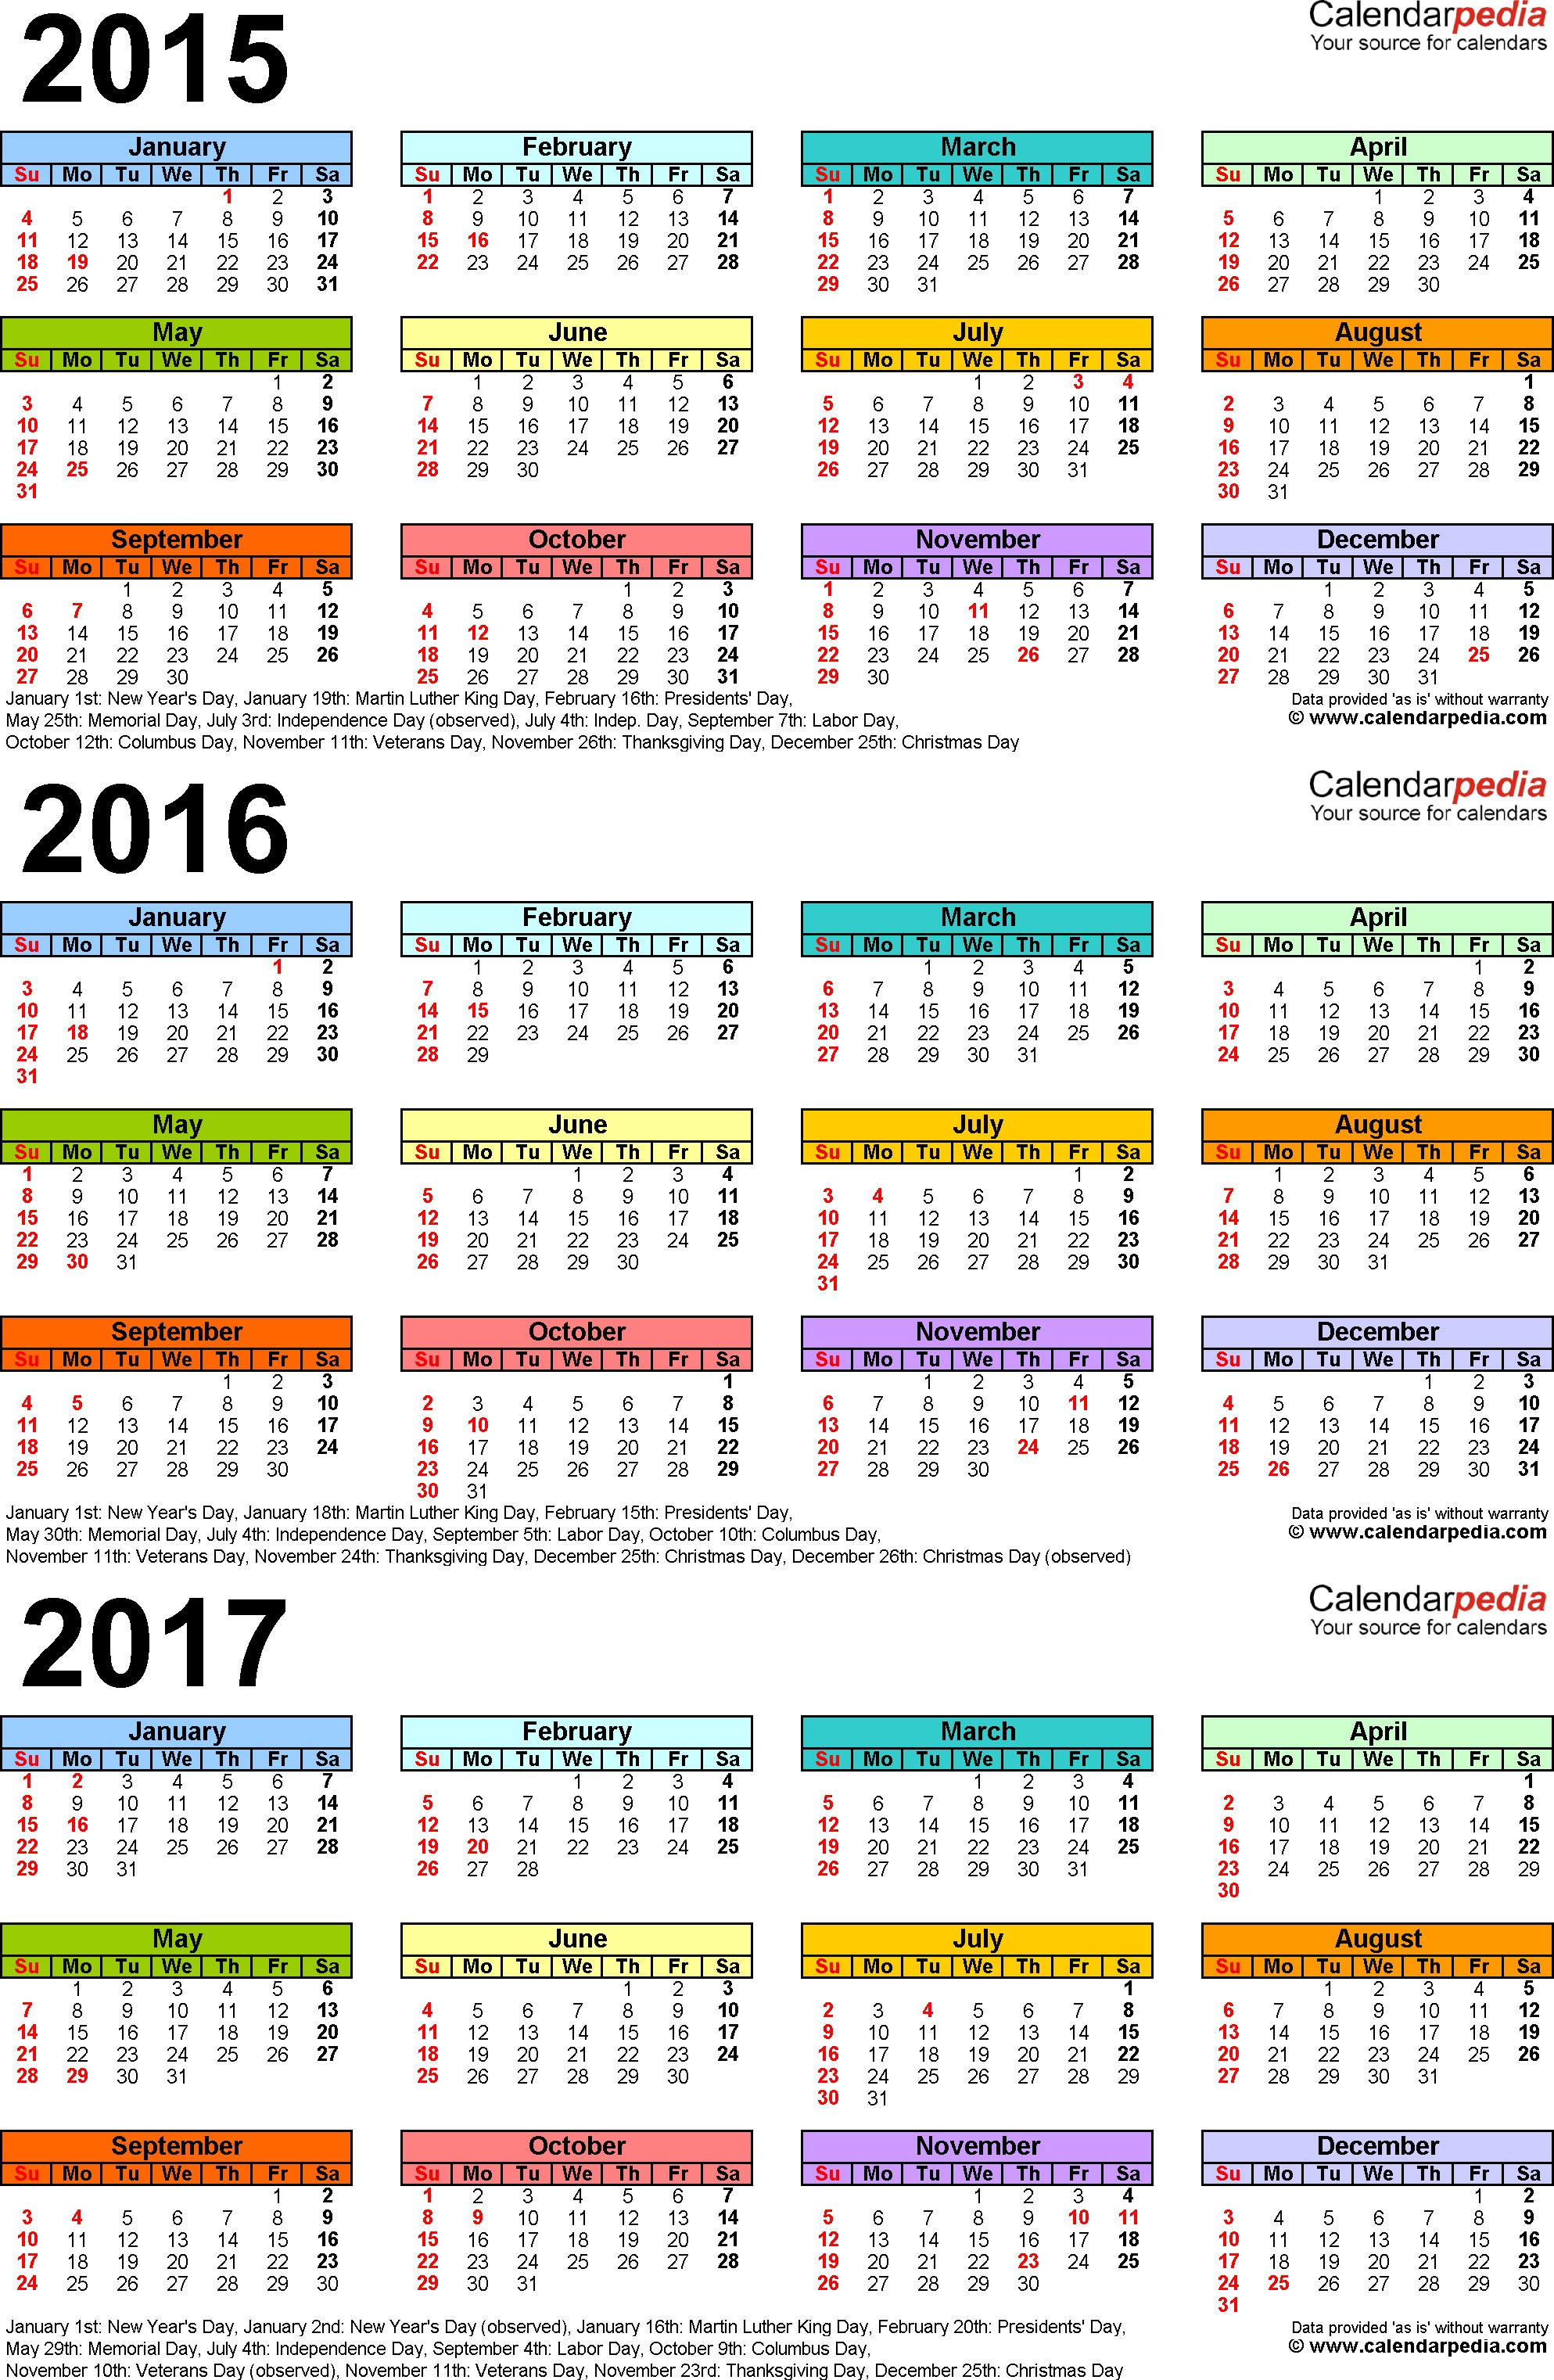 March Calendar Blank 2019 Mejores Y Más Novedosos 2015 2016 2017 Calendar 4 Three Year Printable Pdf Calendars Of March Calendar Blank 2019 Más Caliente 2019 March for Life Info